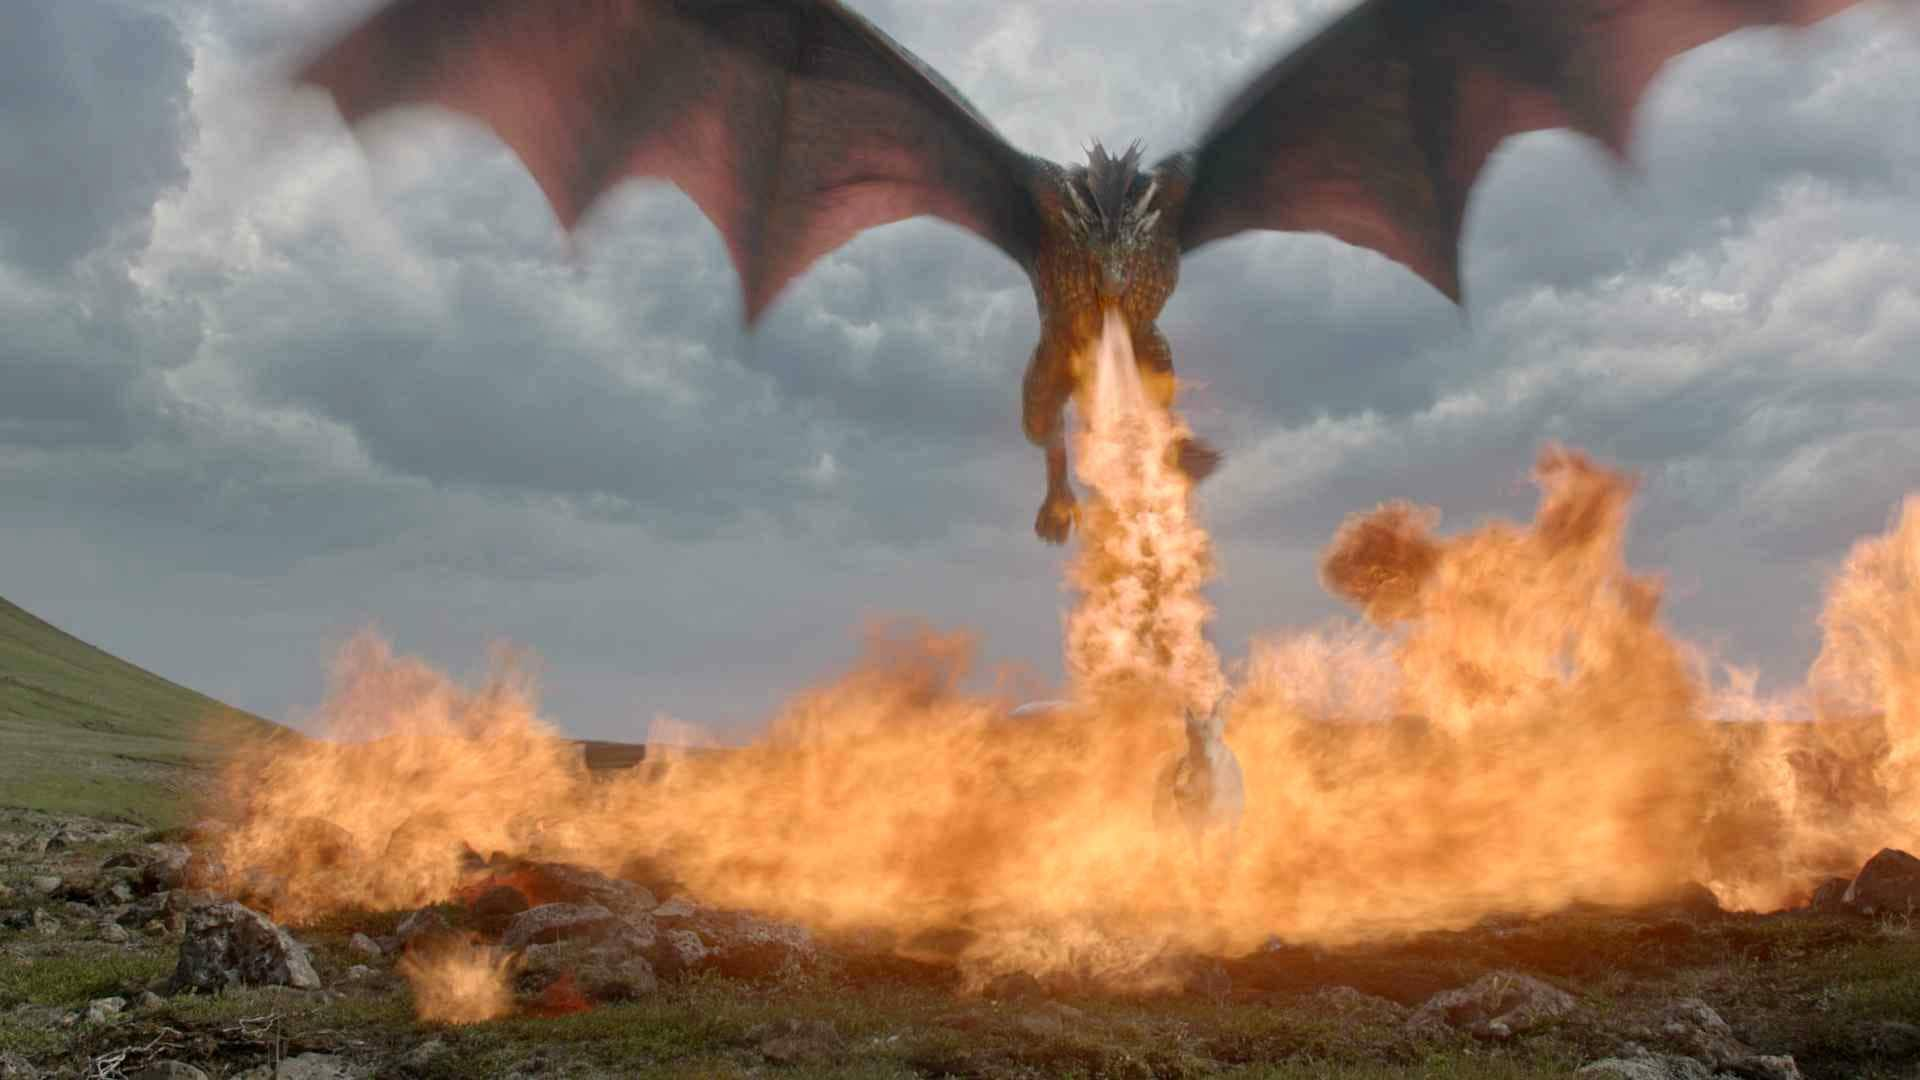 Here's why Daenerys Targeryan is not a suitable candidate for the Iron Throne